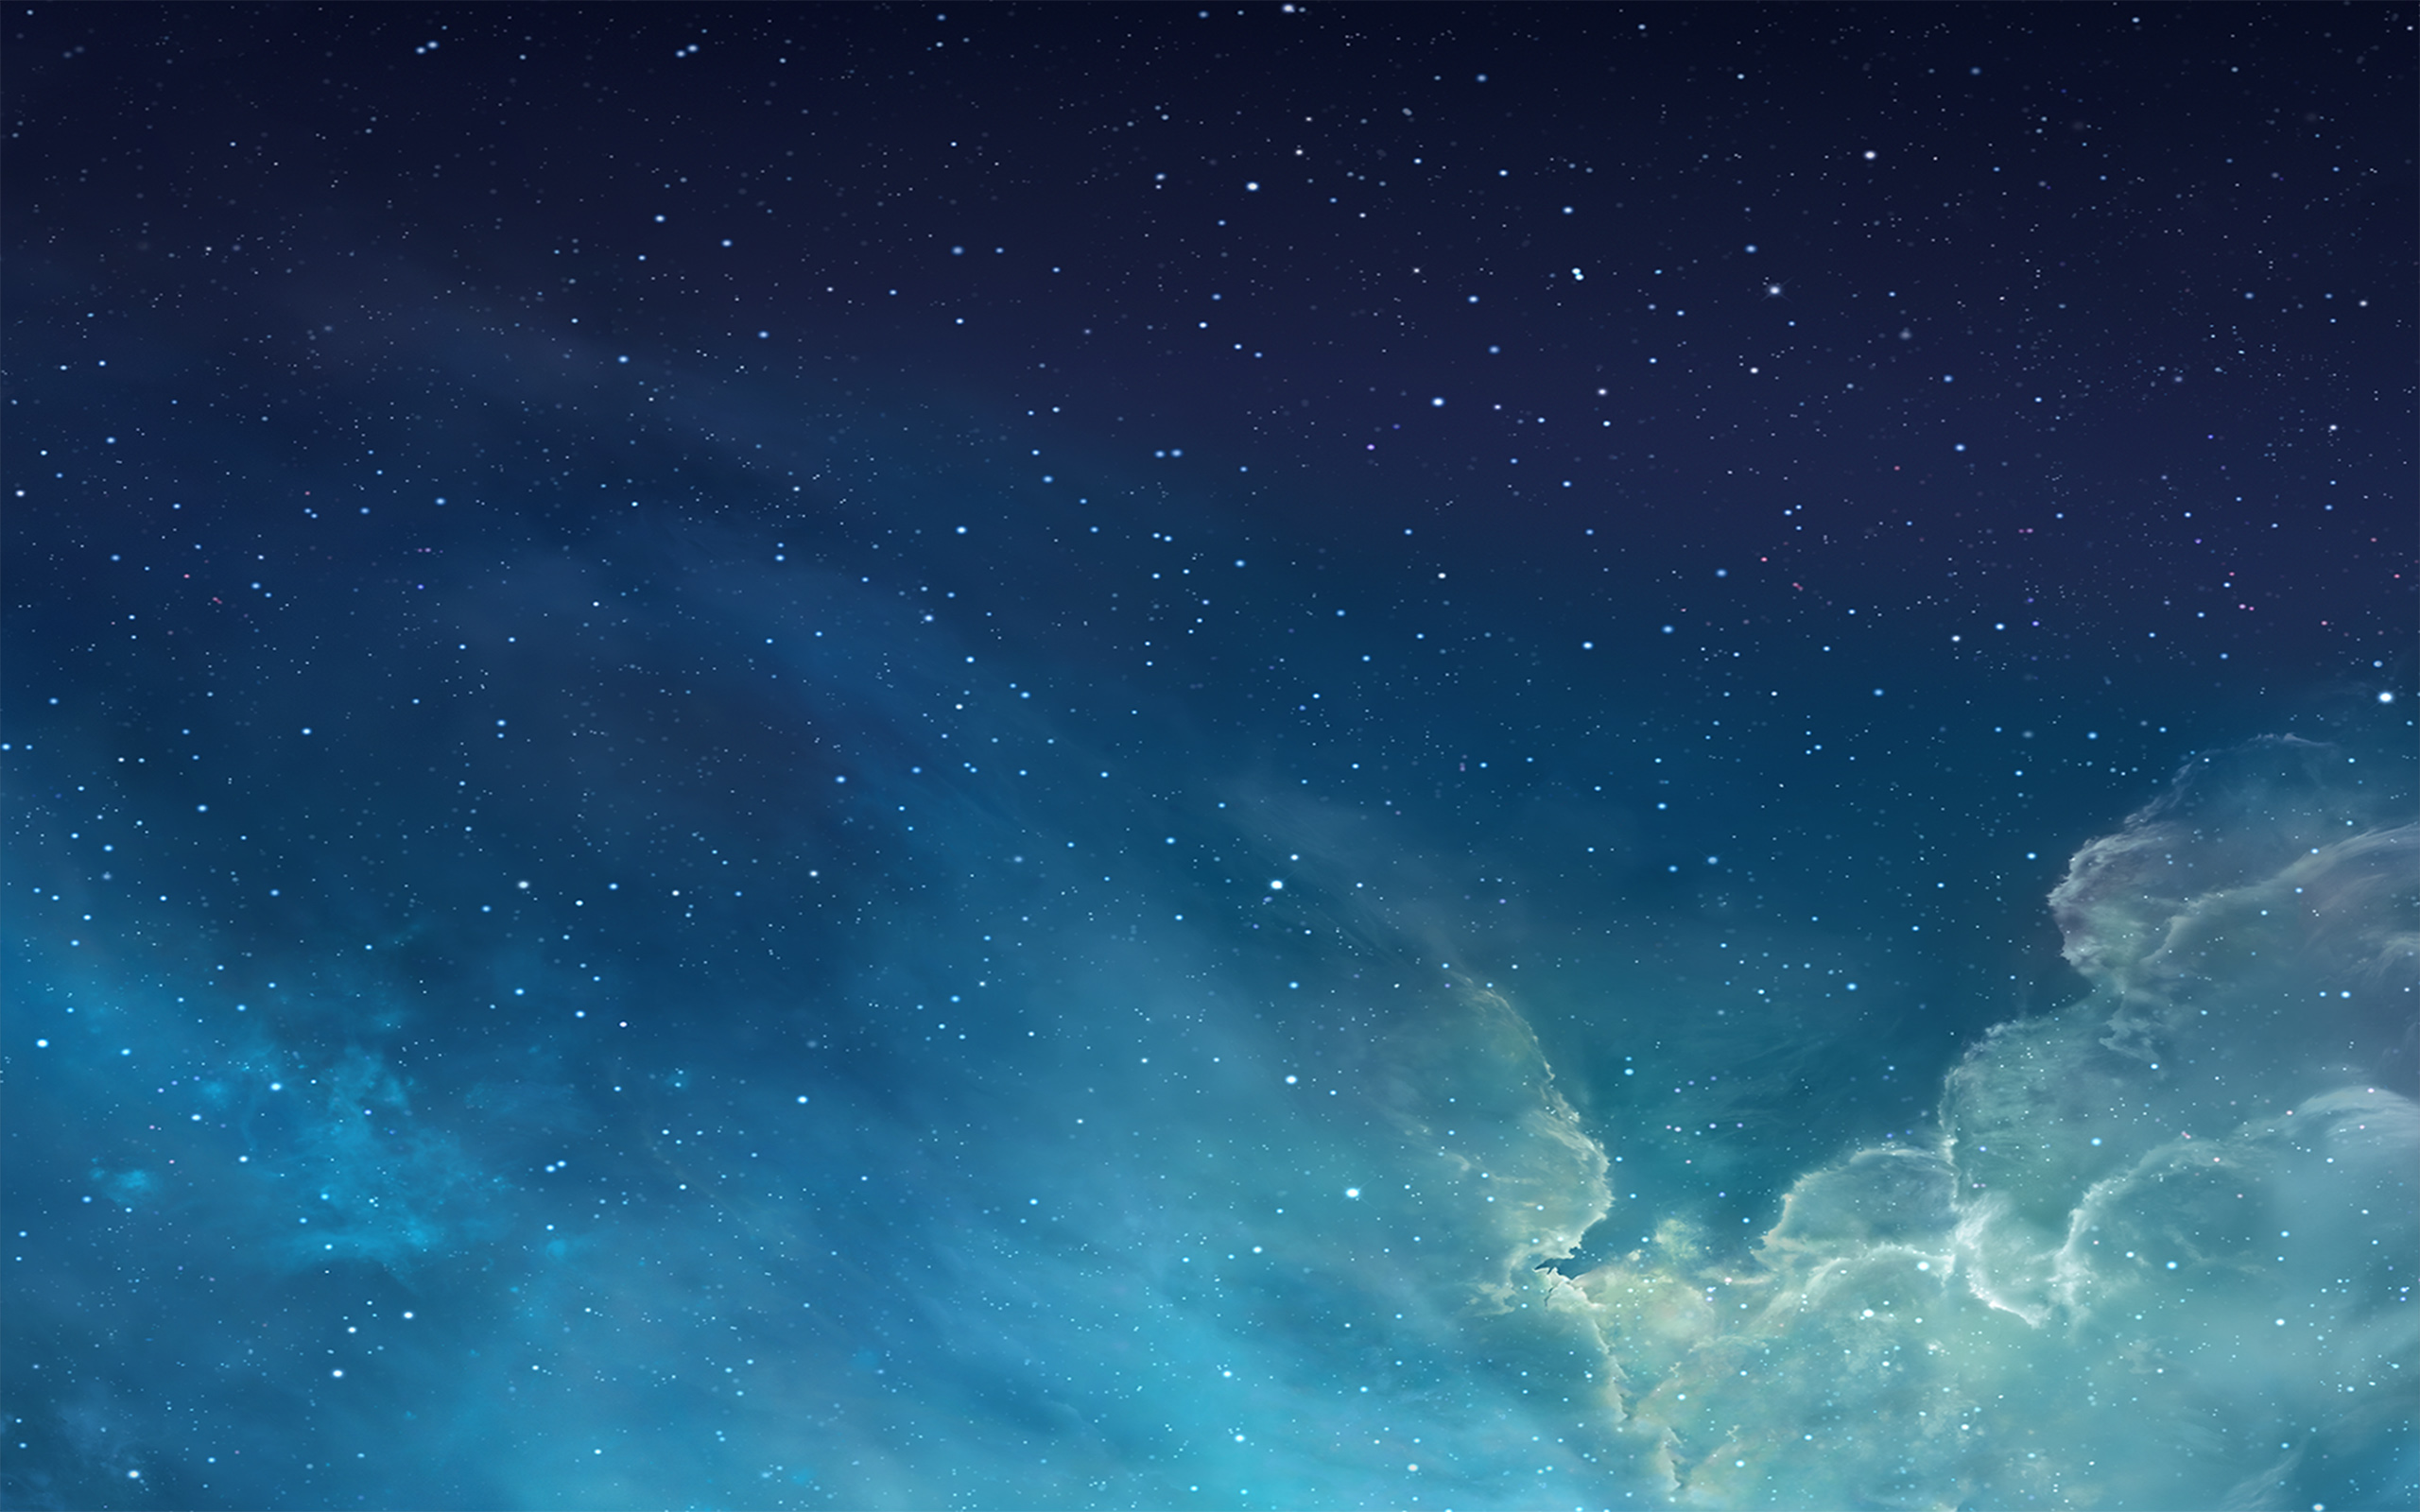 night sky wallpaper 11280